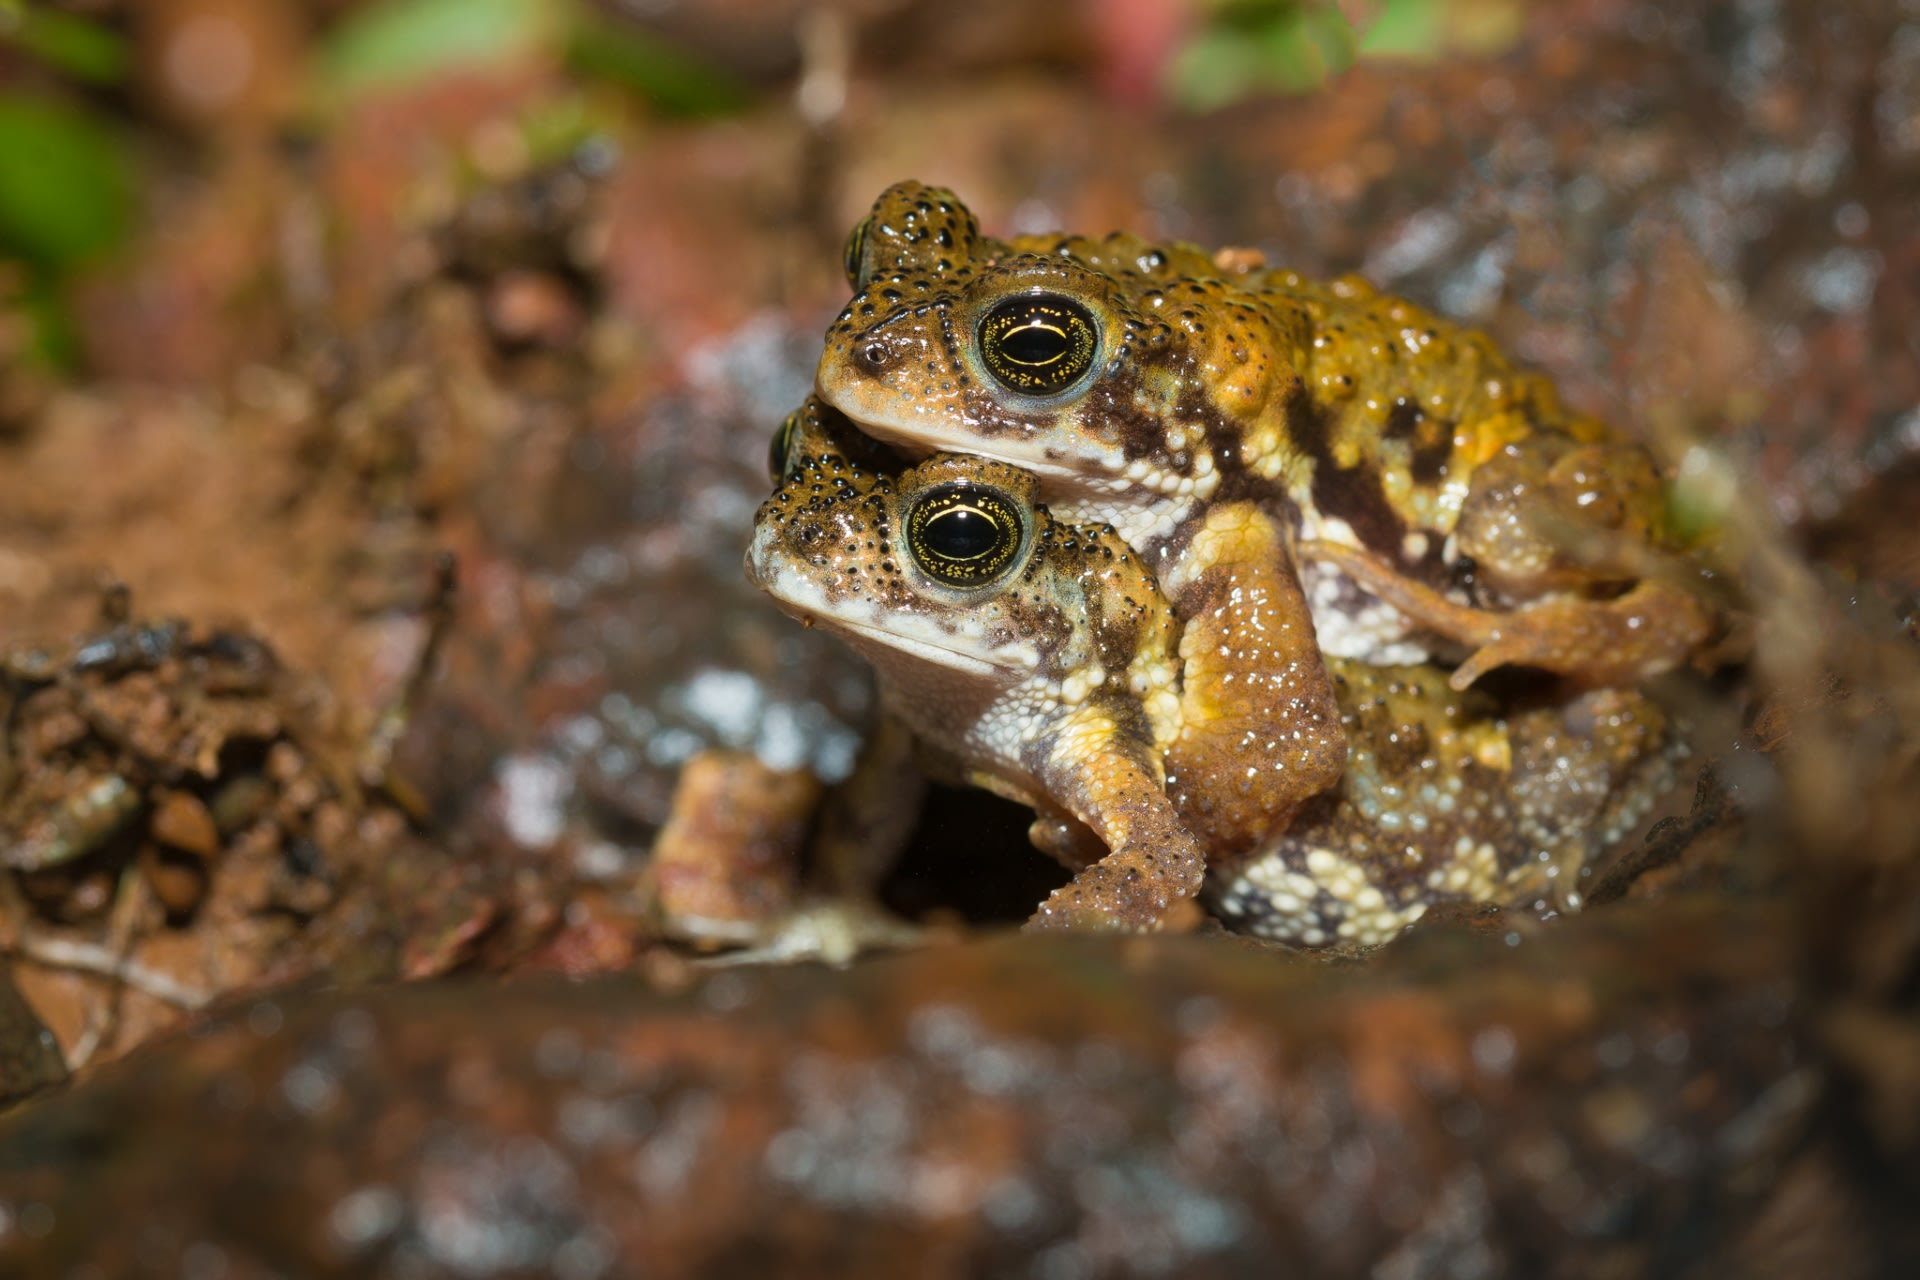 Early monsoon (June) is probably the best time to see the threatened Amboli toad as it is their mating season. Depending on the intensity of rainfall, they can be seen in large numbers out in the open on lateritic plateaus. The females lay eggs in the small pools that form on the plateau with the rain.